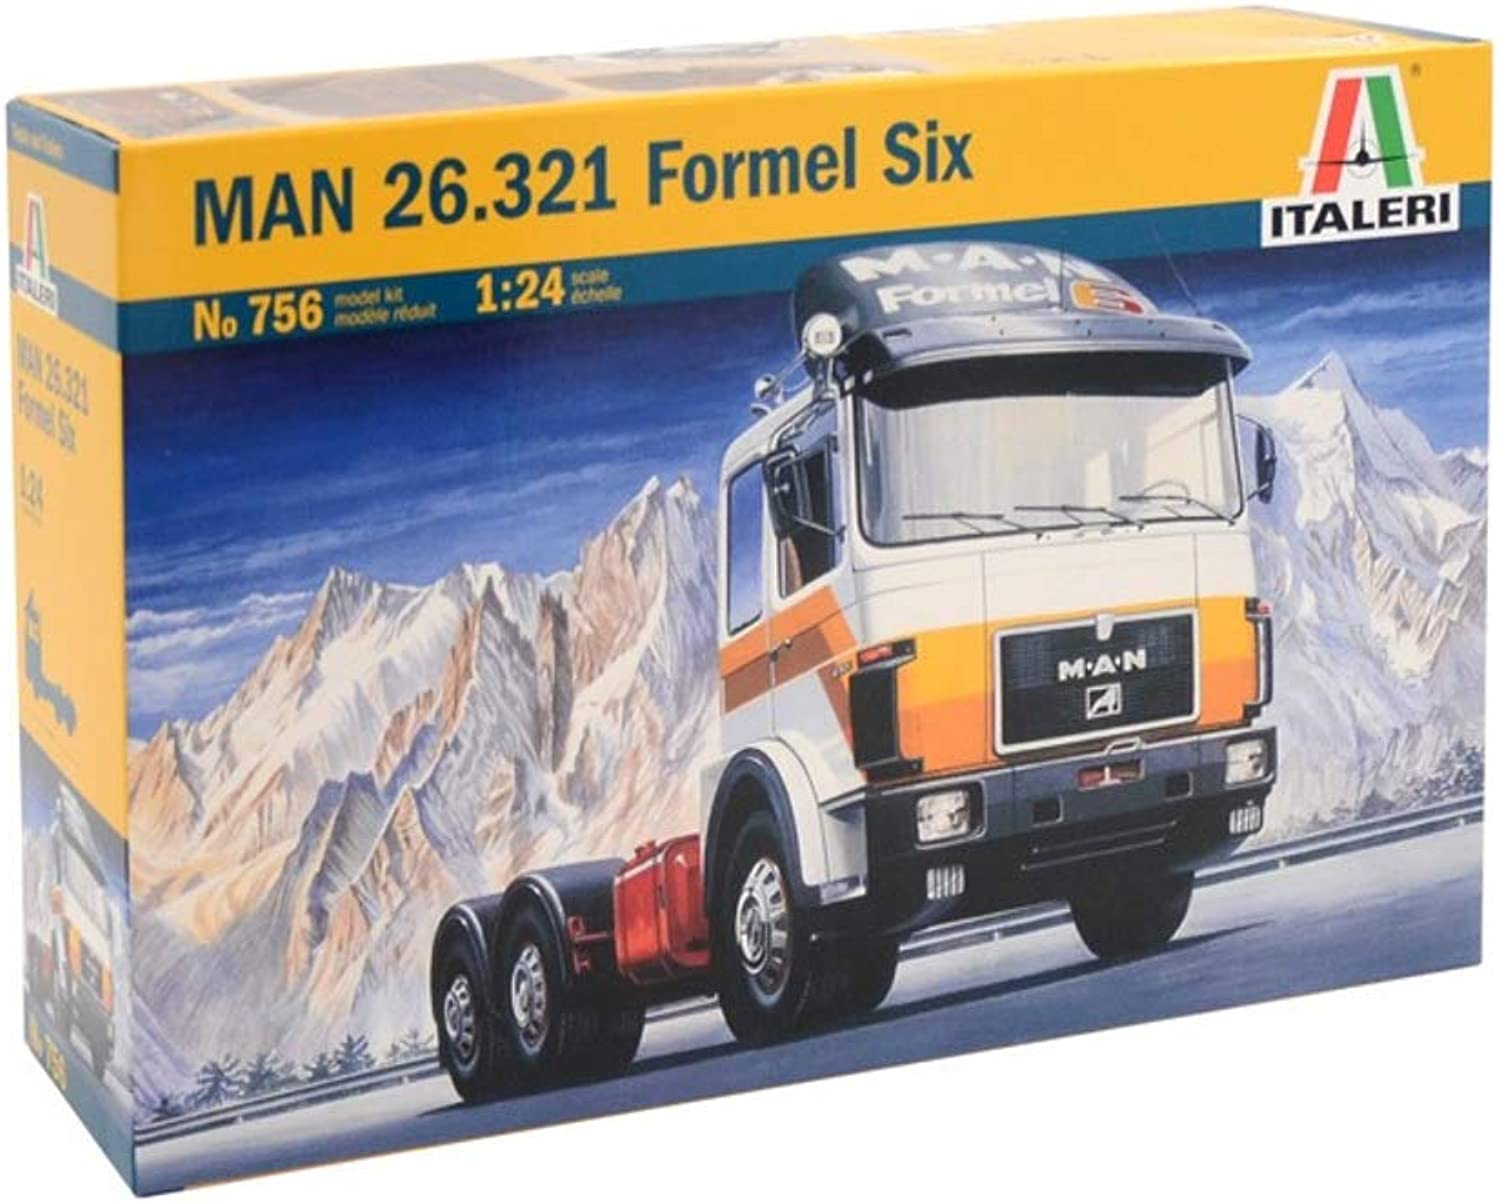 Italeri MAN 26.321 Formel Six Model Kit